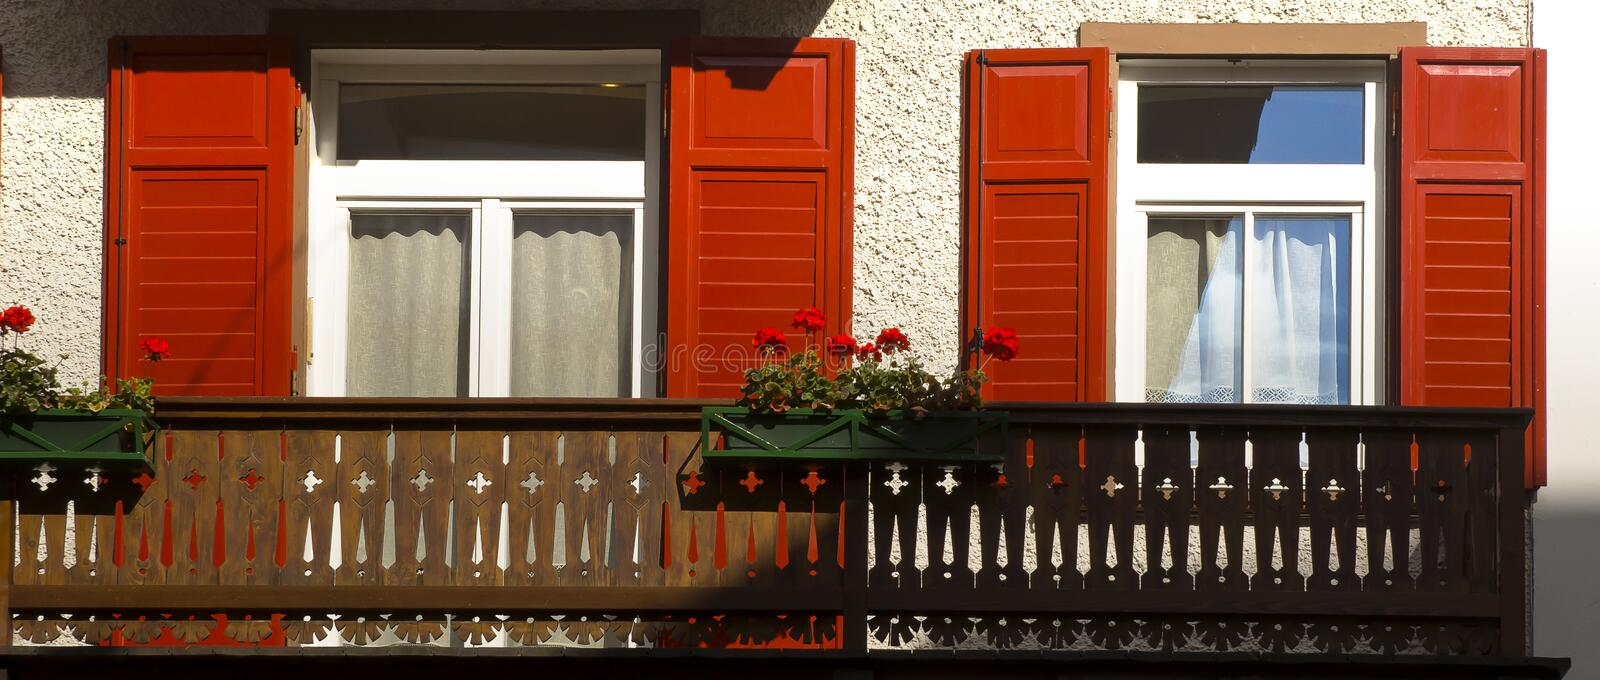 Red shutters flowers, Cortina dAmpezzo, Italy royalty free stock image